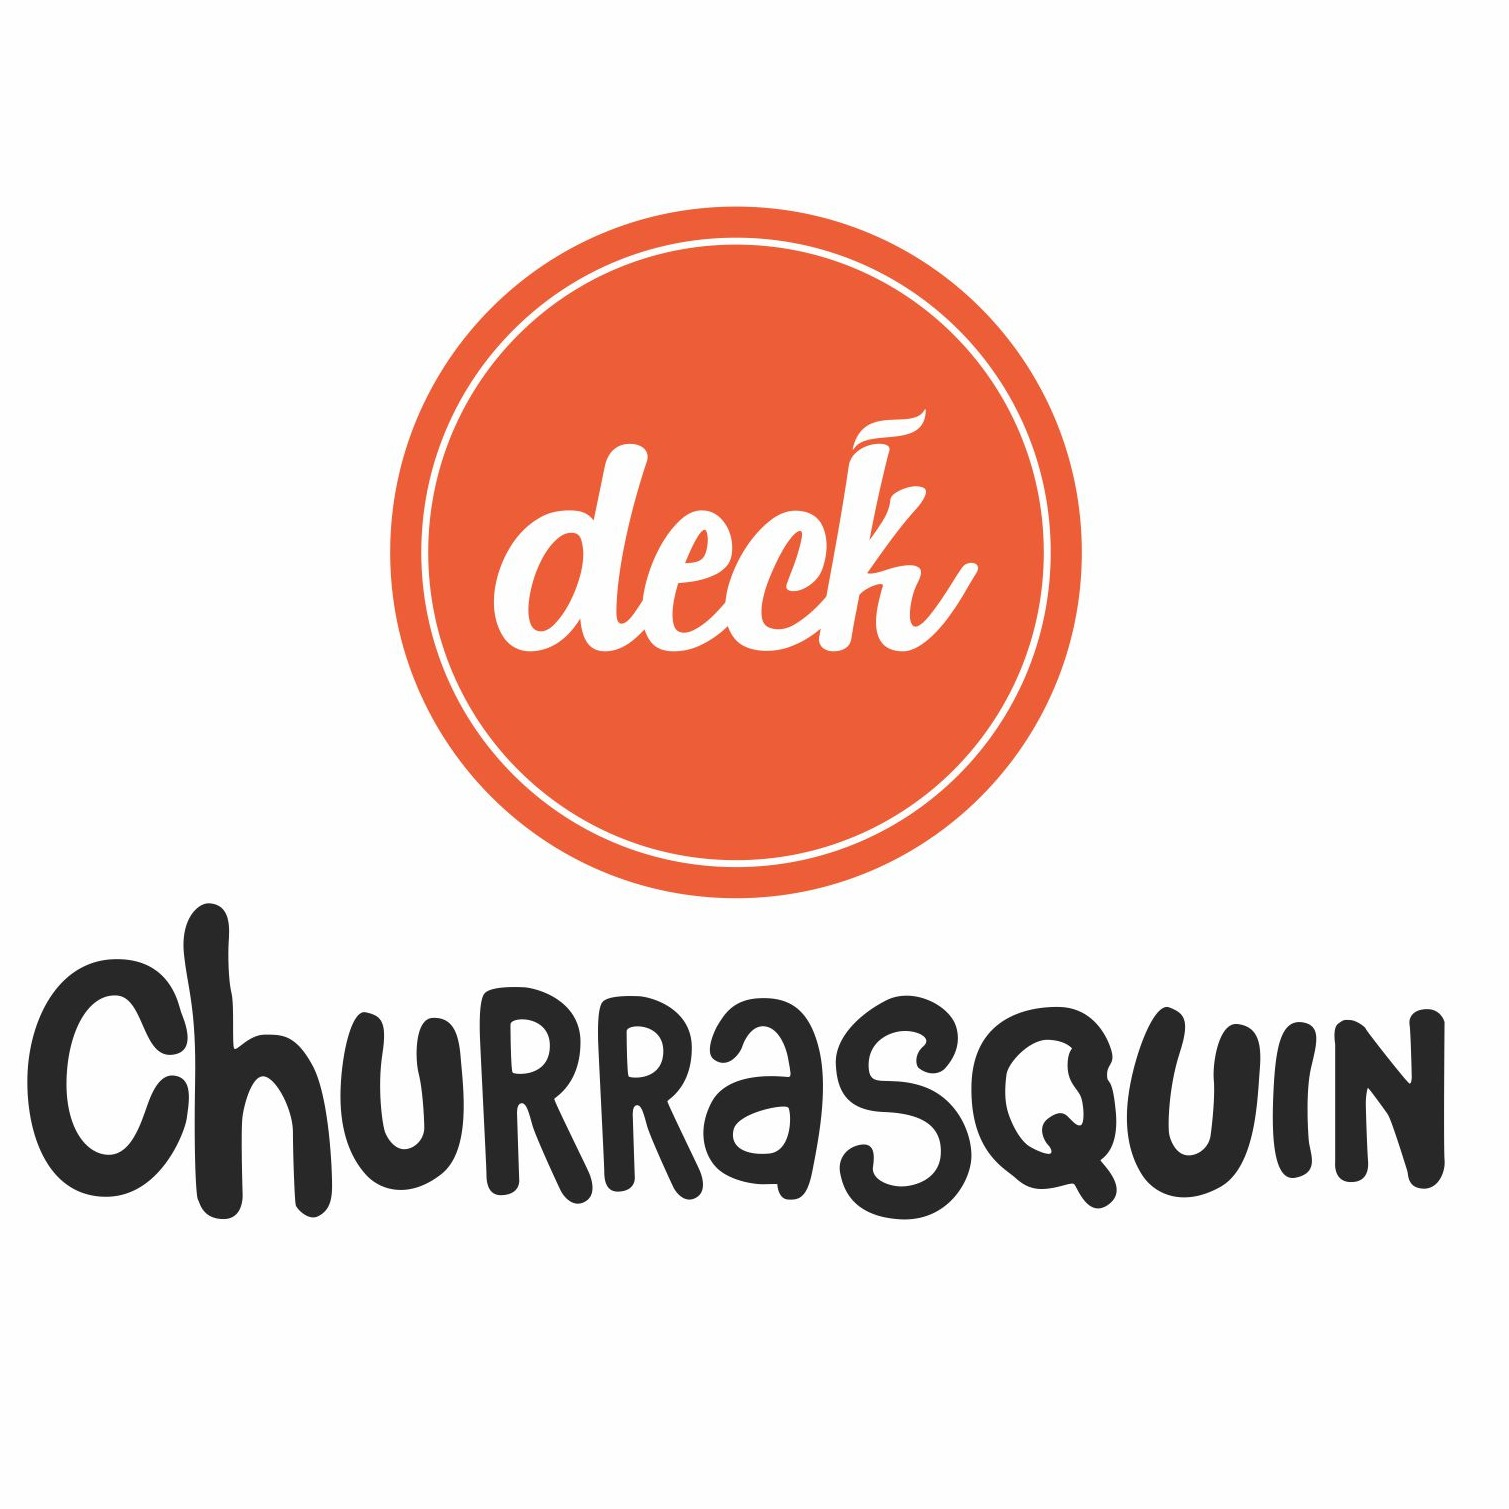 Deck Churrasquin